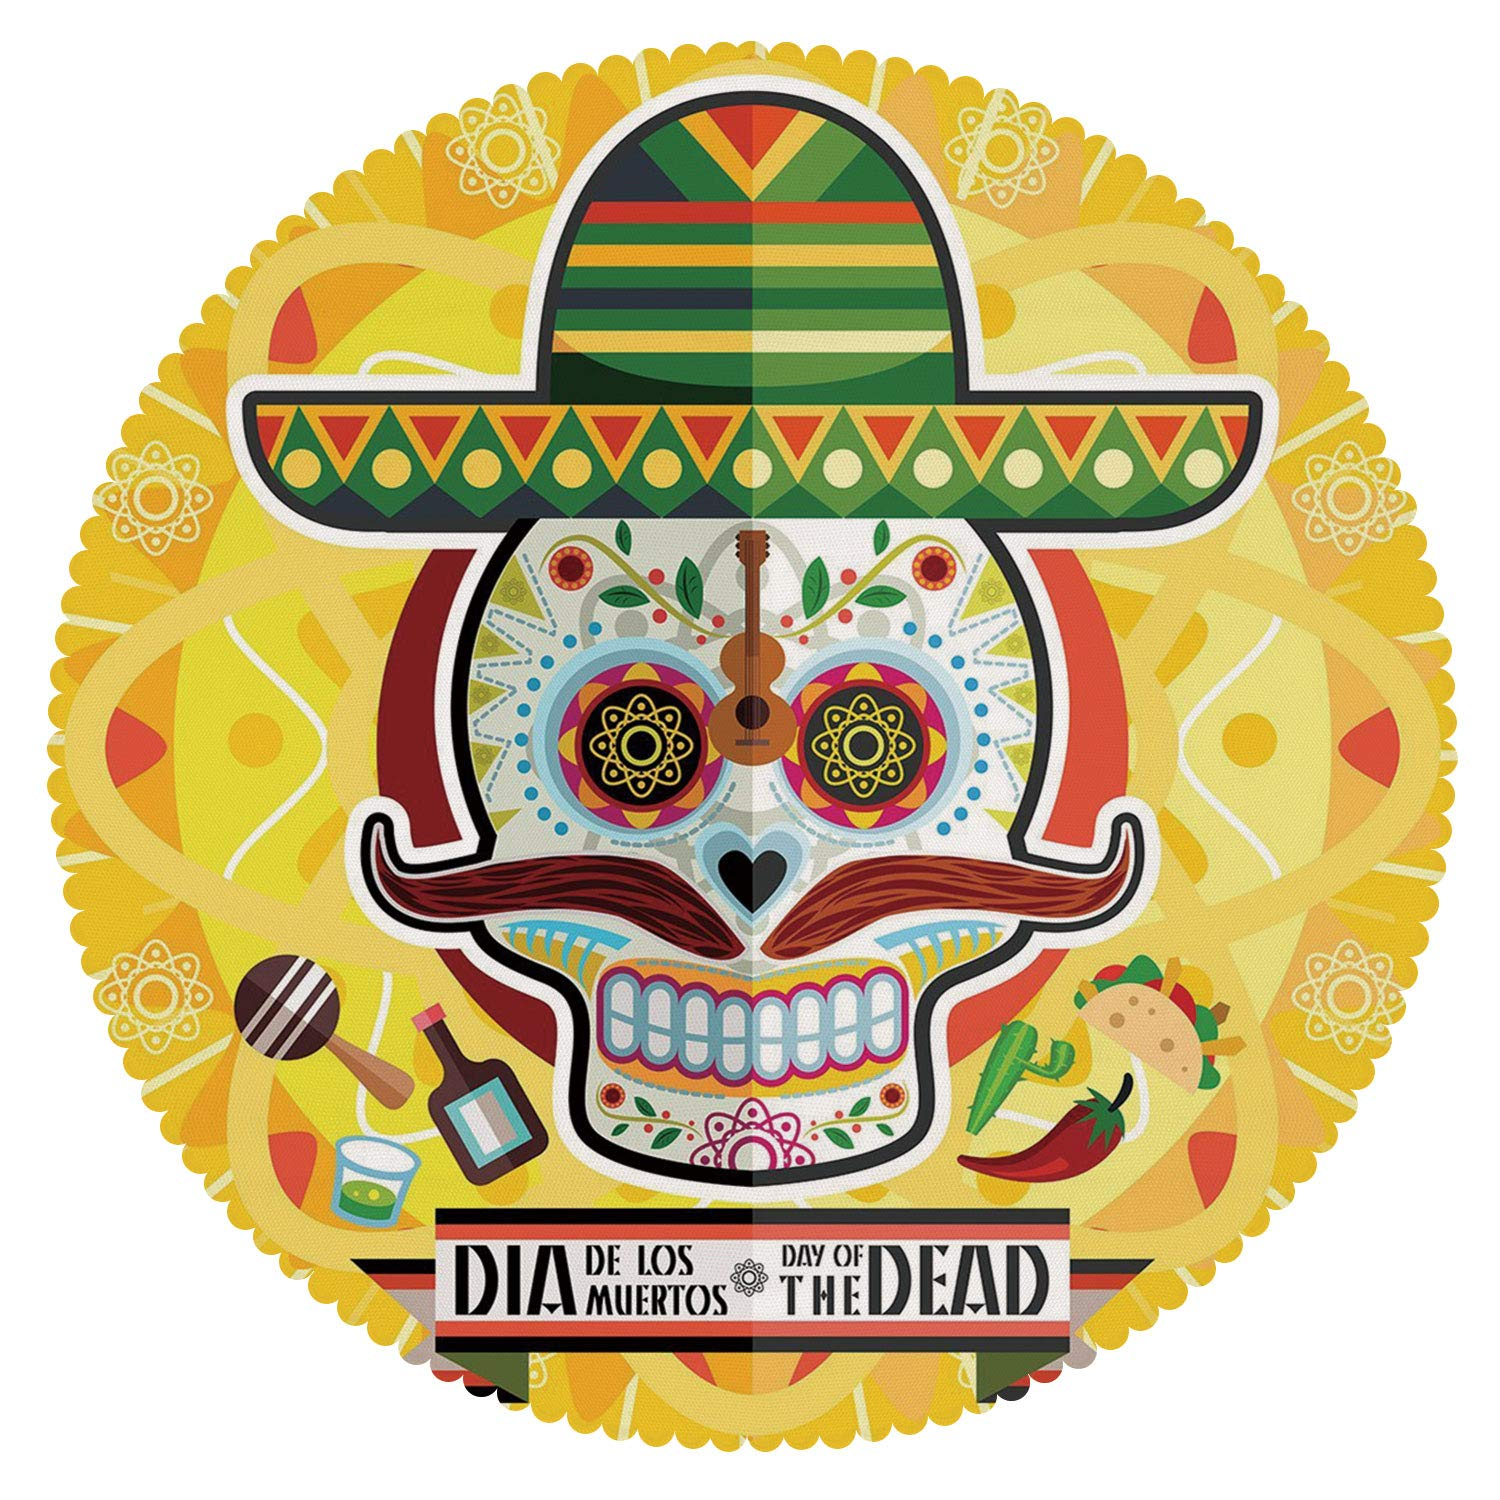 iPrint Round Tablecloth [ Day of The Dead Decor,Mexican Sugar Skull with Tacos and Chili Pepper November 2nd Colorful Art,Yellow ] Fabric Kids Home Tablecloth Designs